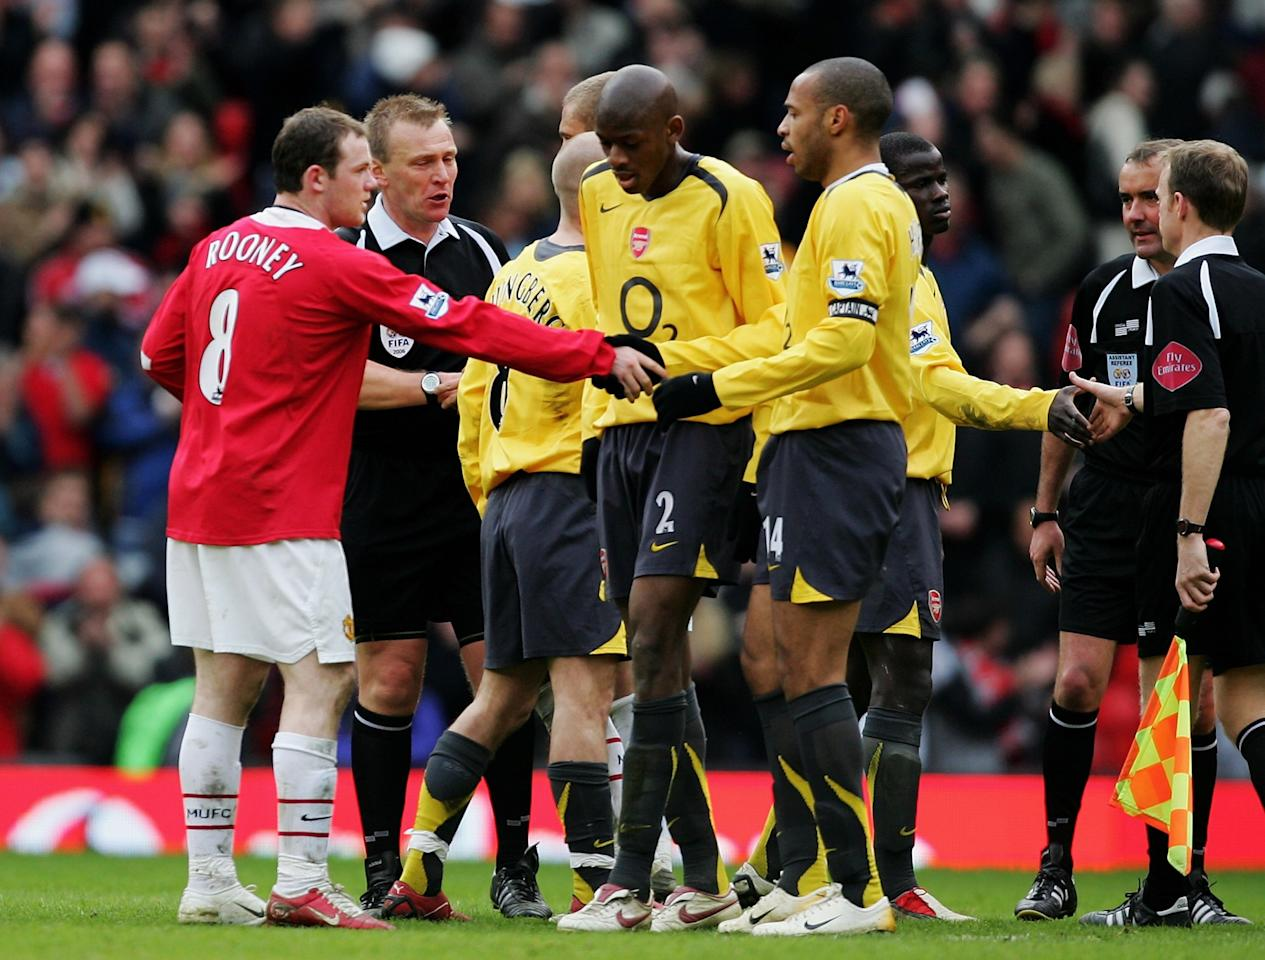 <p>The Red Devils striker showed his composure in abundance for this cracker against rivals Arsenal. Following a long cross into the box, Rooney took a wonderful first touch and slammed the ball home, to give the hosts a 2-0 lead. </p>